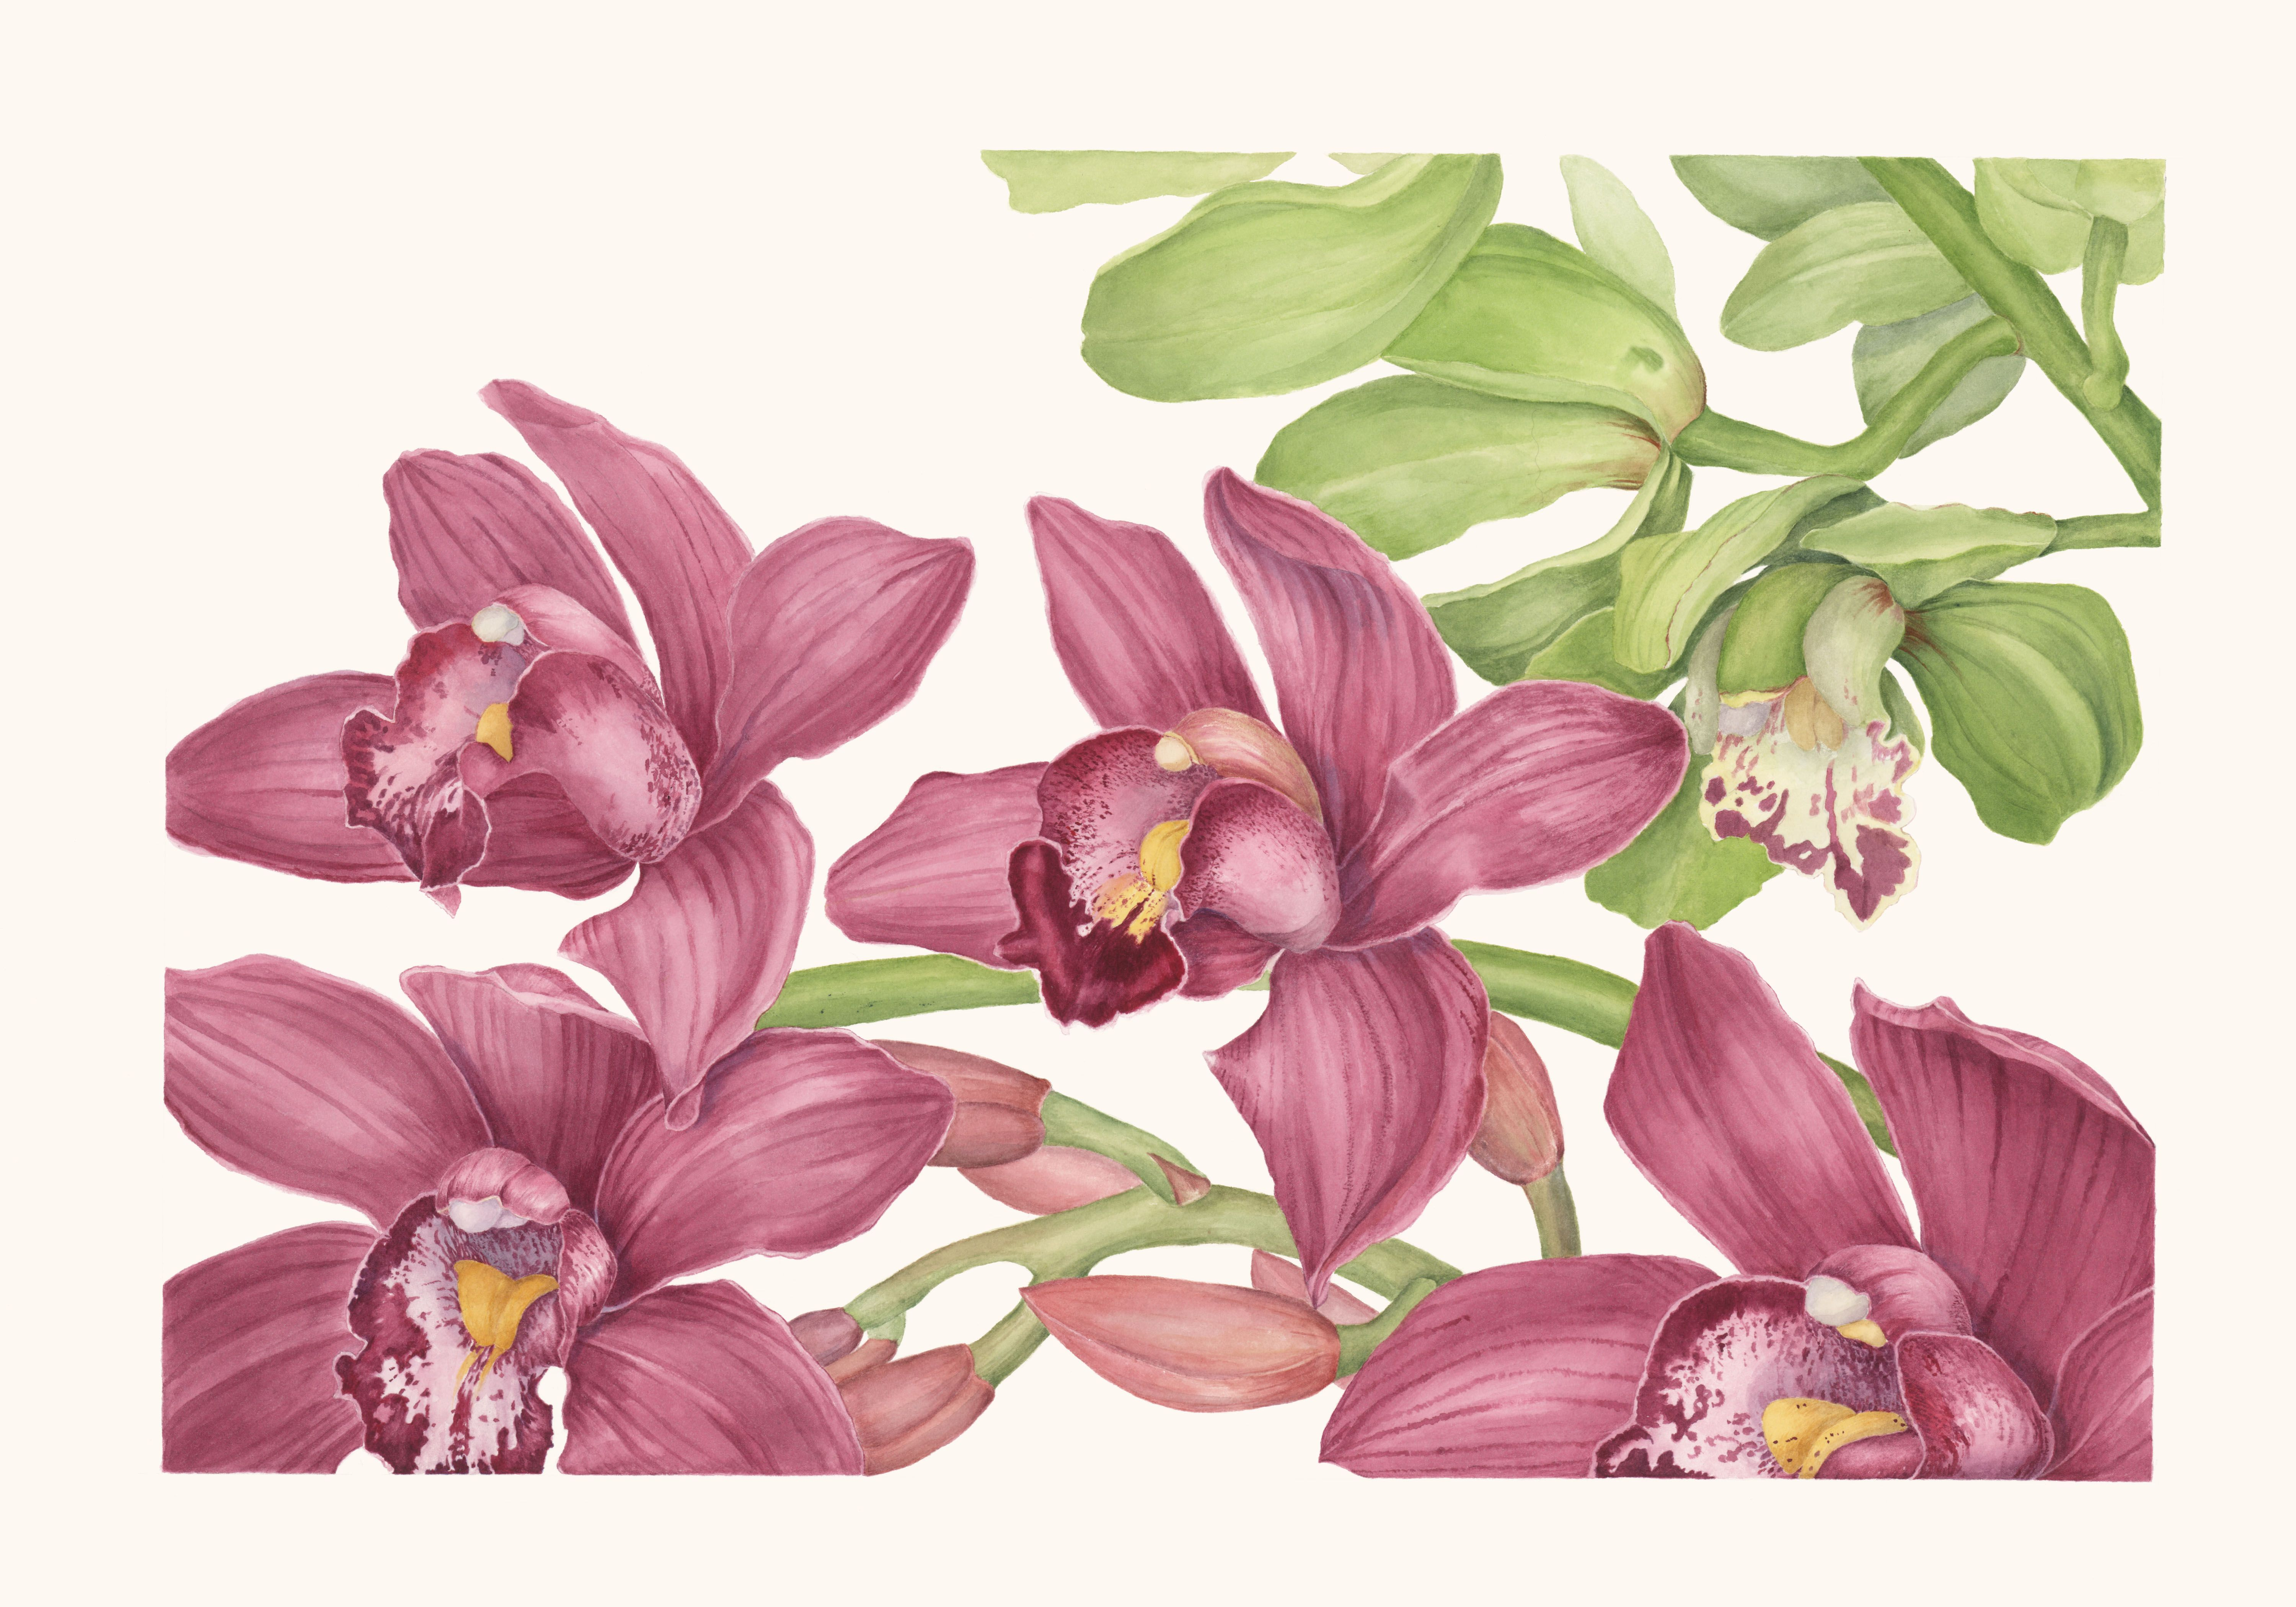 Cymbidium Orchids Watercolor By Sally Jacobs Botanical Art Botanical Prints Botanical Watercolor